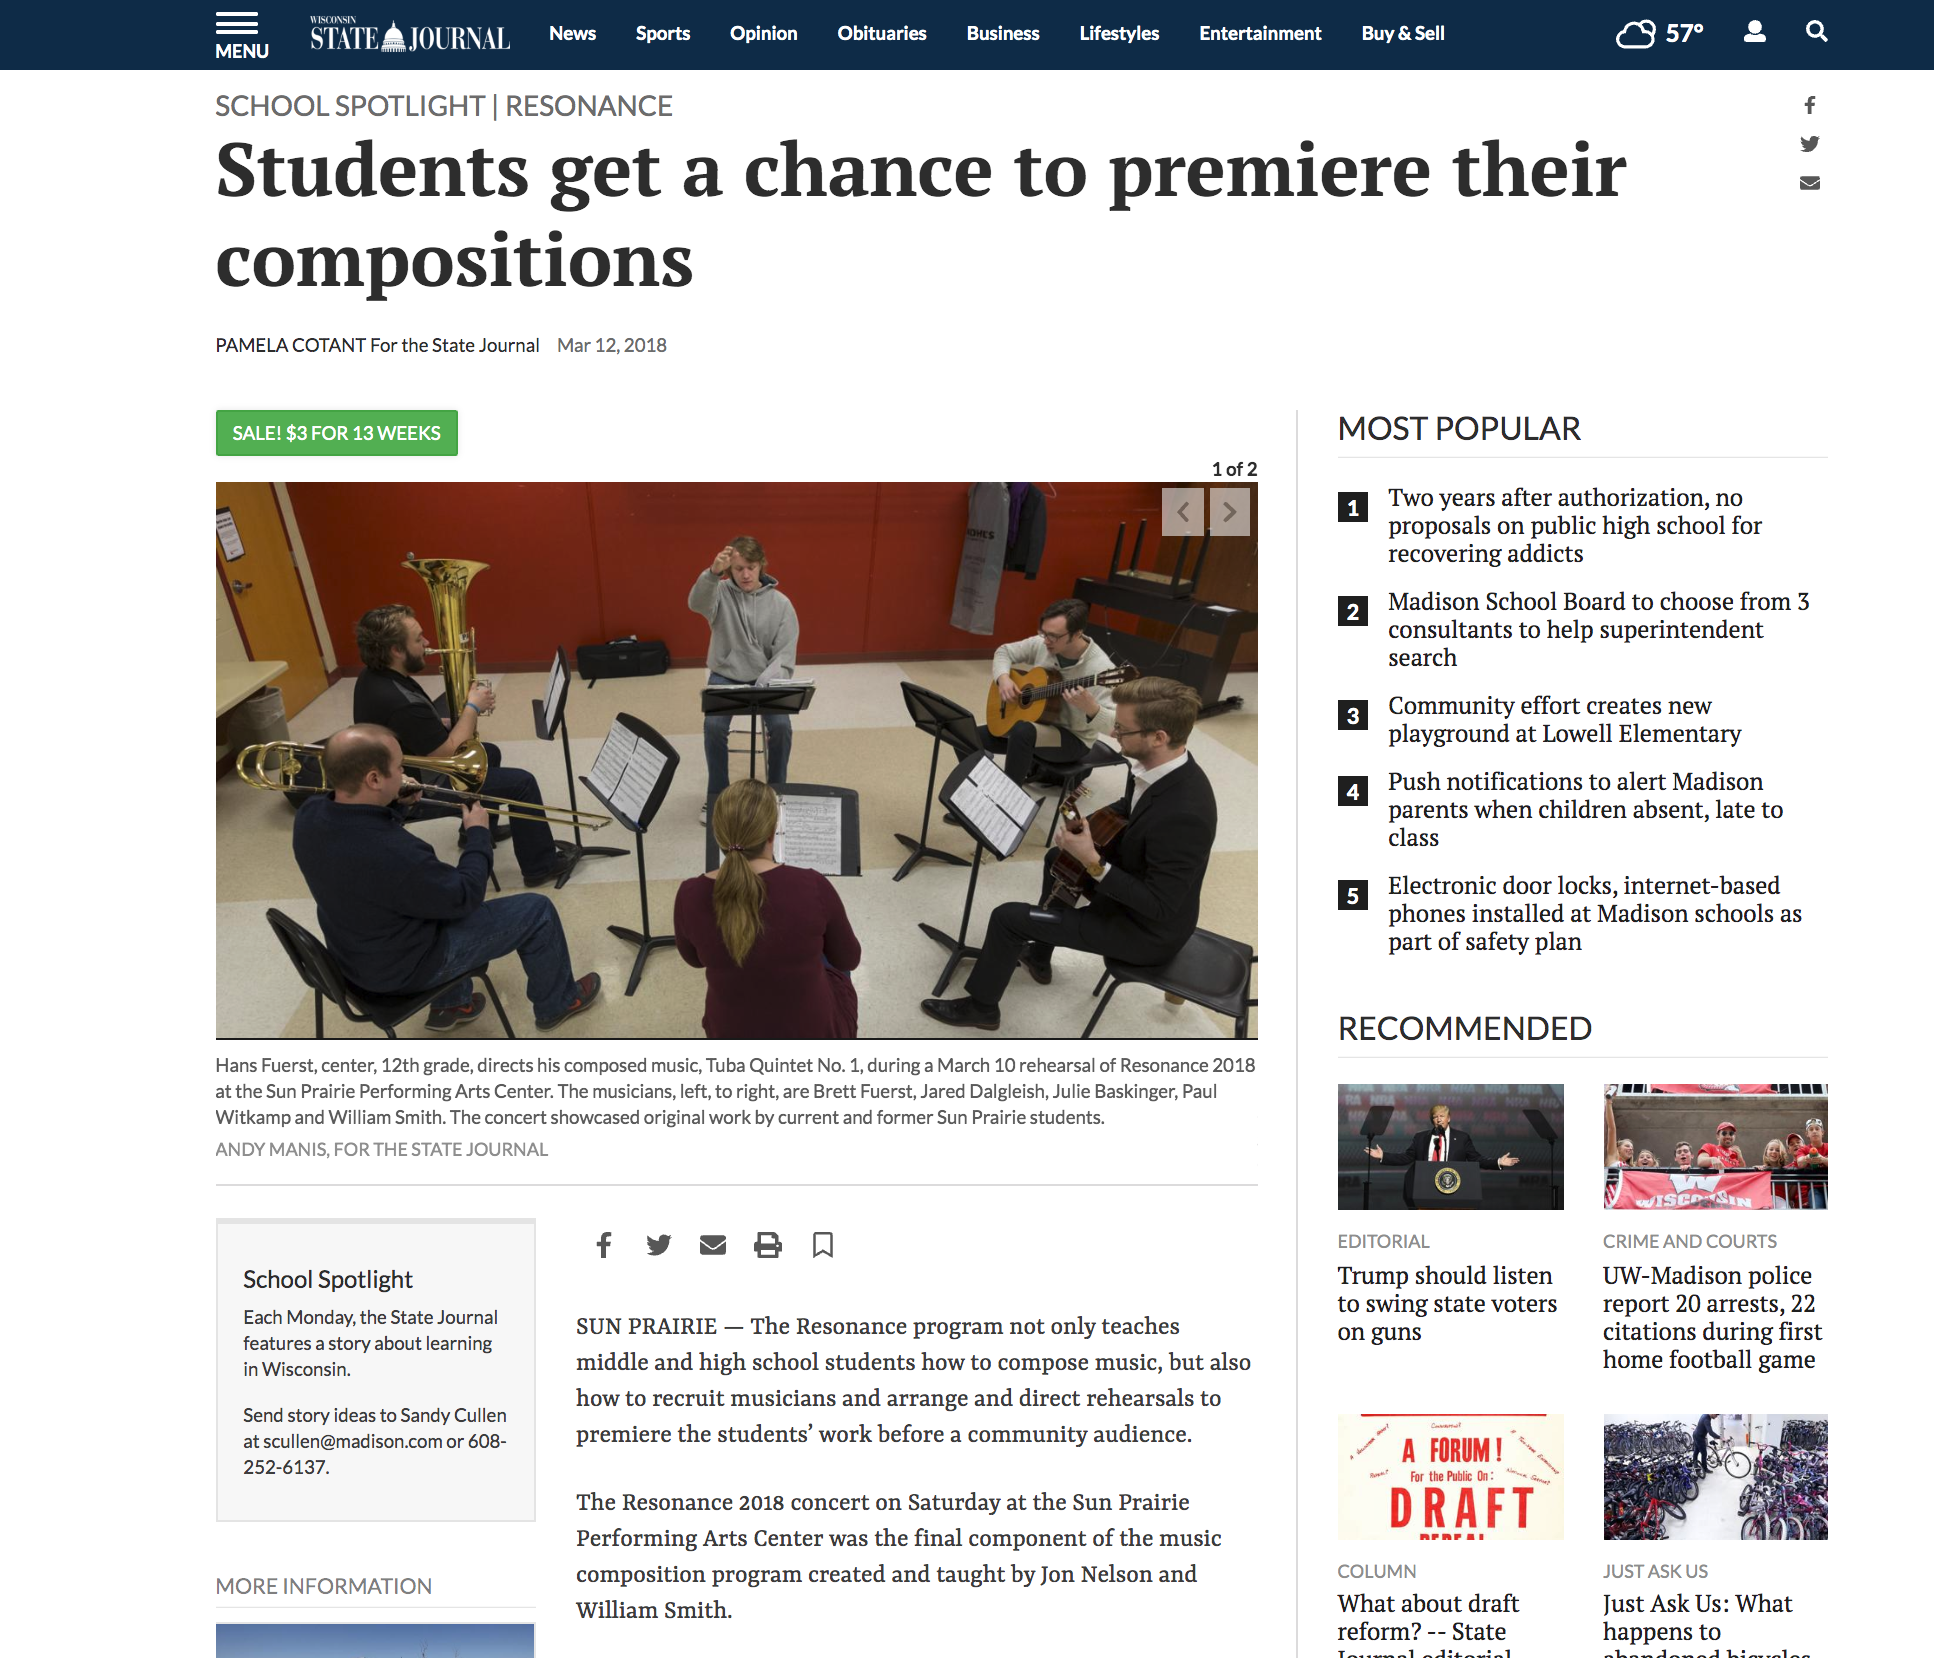 View Original Articale Online:  https://madison.com/wsj/news/local/education/local_schools/students-get-a-chance-to-premiere-their-compositions/article_3fa16a10-77ba-562b-ba6a-1ba970b389ef.html